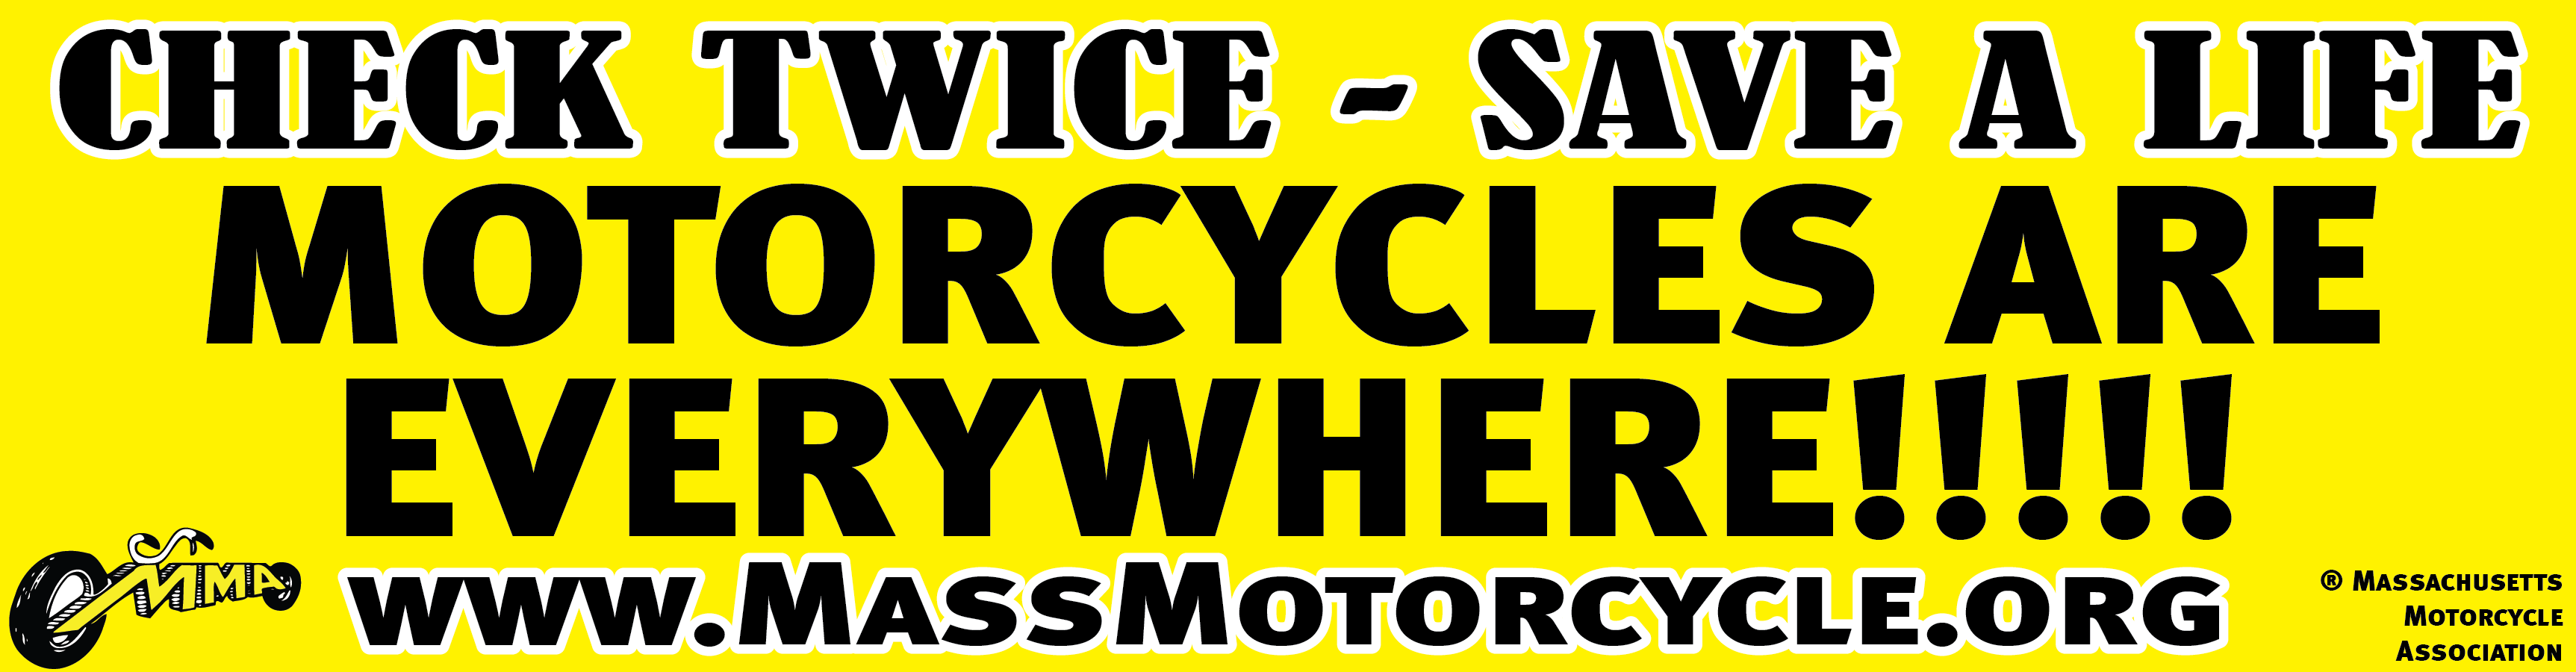 News Articles Massachusetts Motorcycle Association - Custom motorcycle bumper stickers awareness